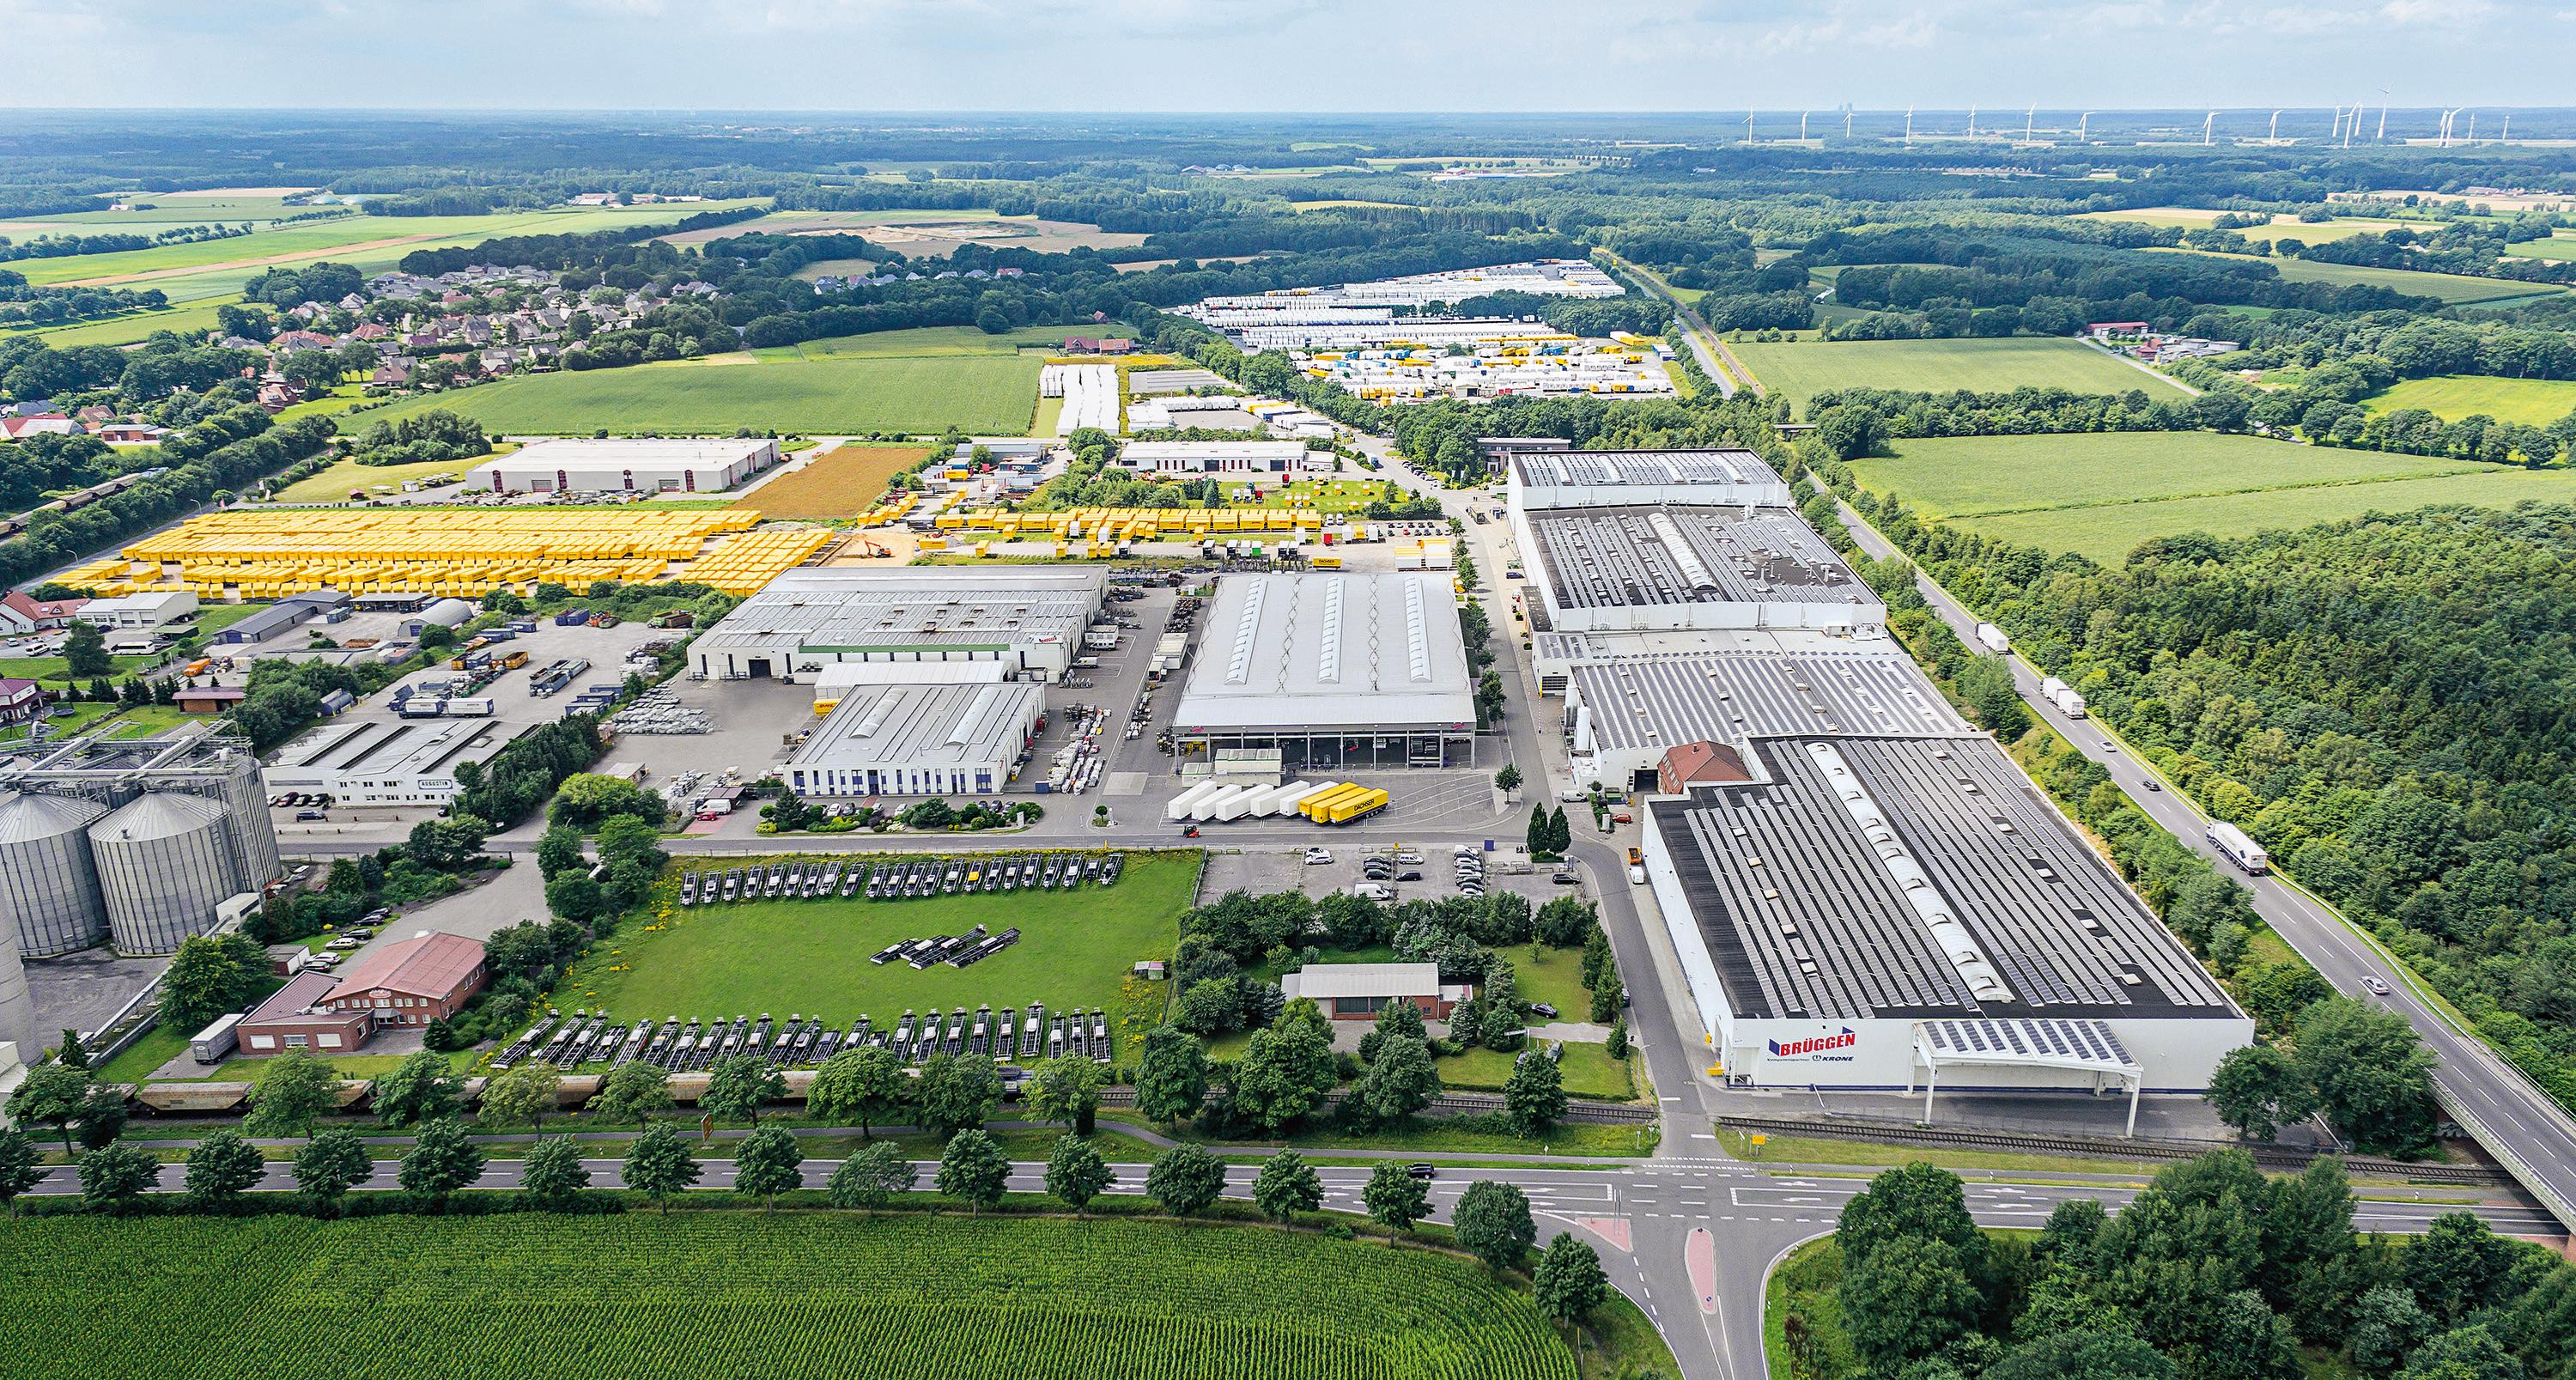 Krone invests in the Herzlake site.